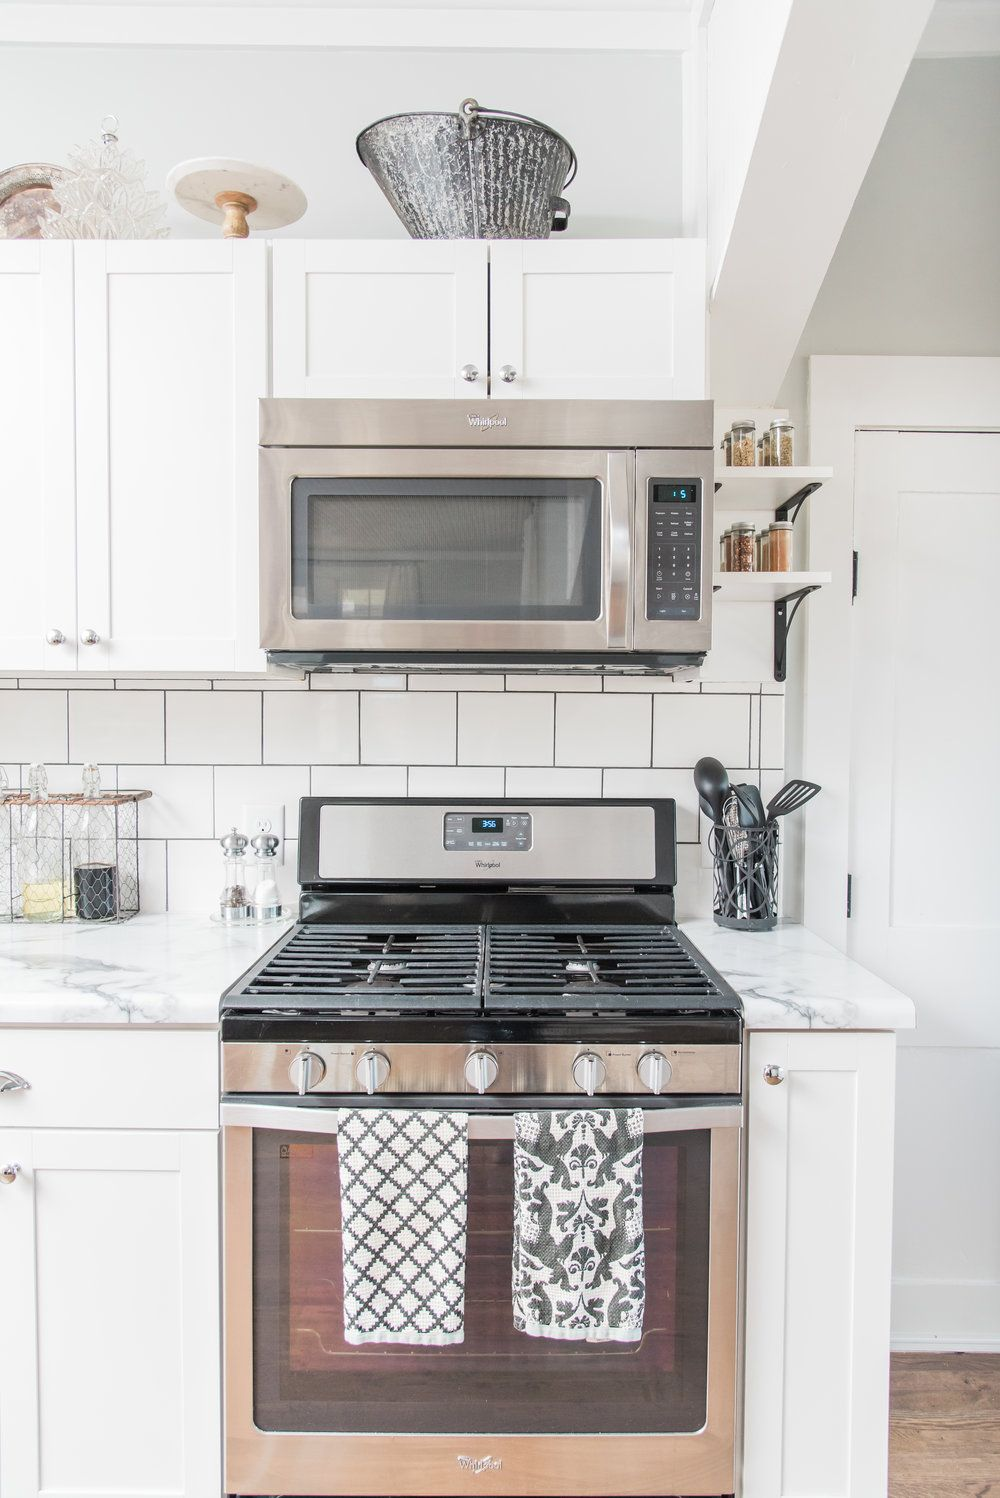 Lowe's Stock Review Lowes kitchen